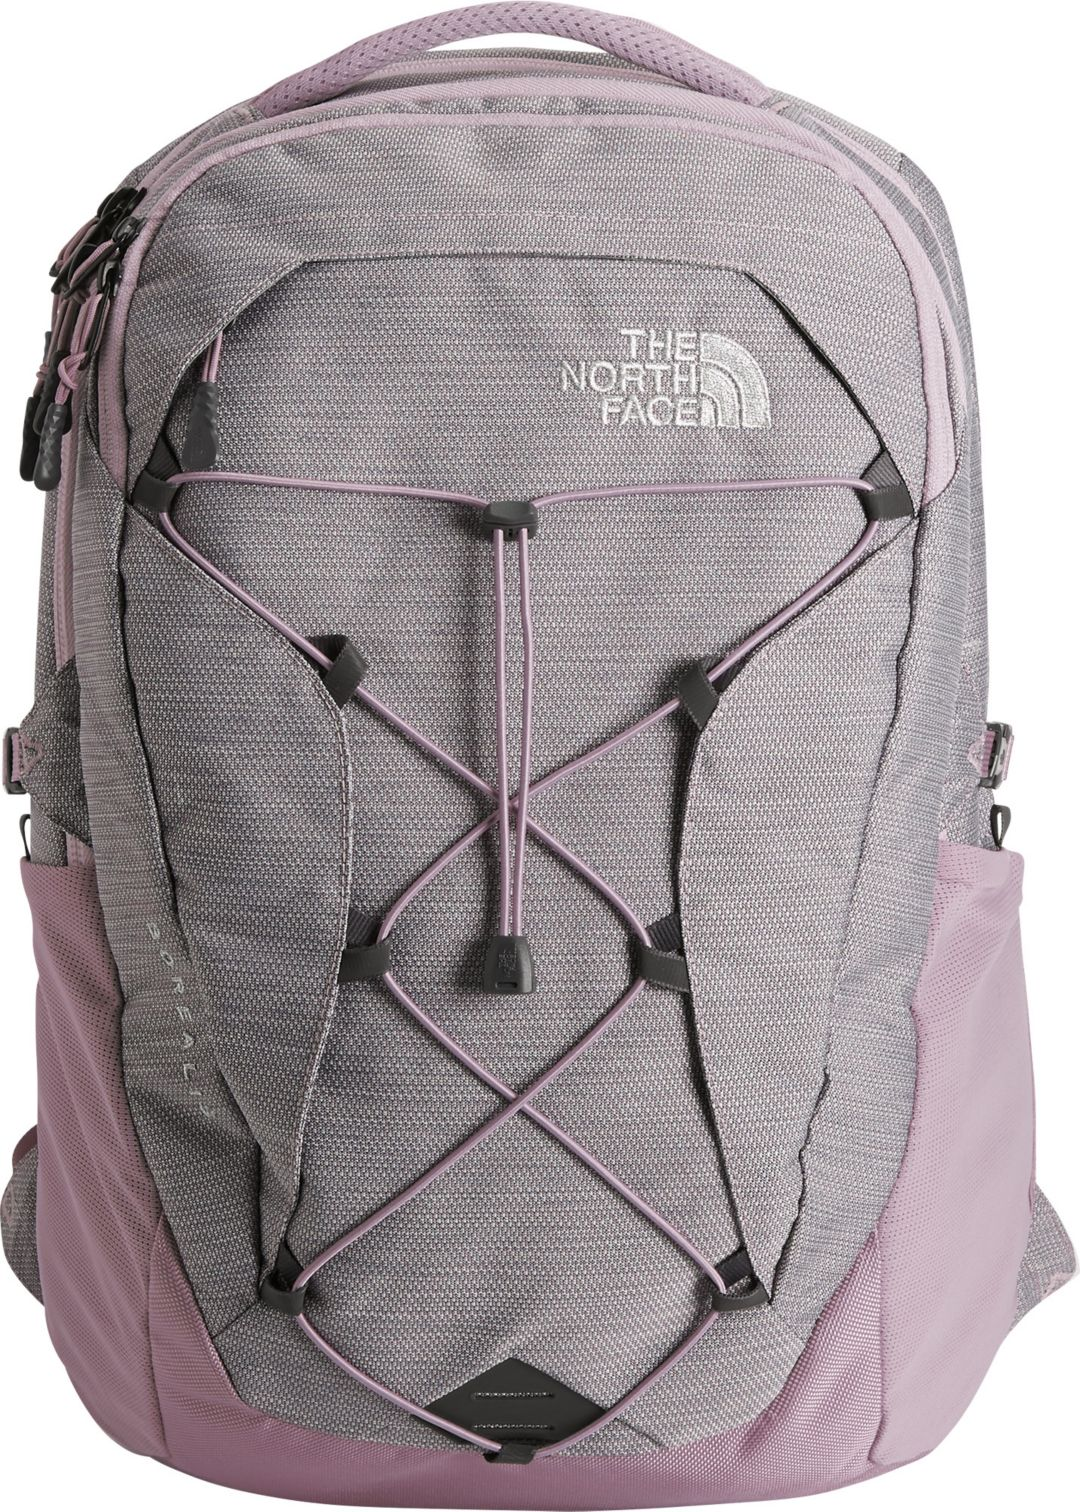 0c964f88e6ee The North Face Women's Borealis Luxe Backpack